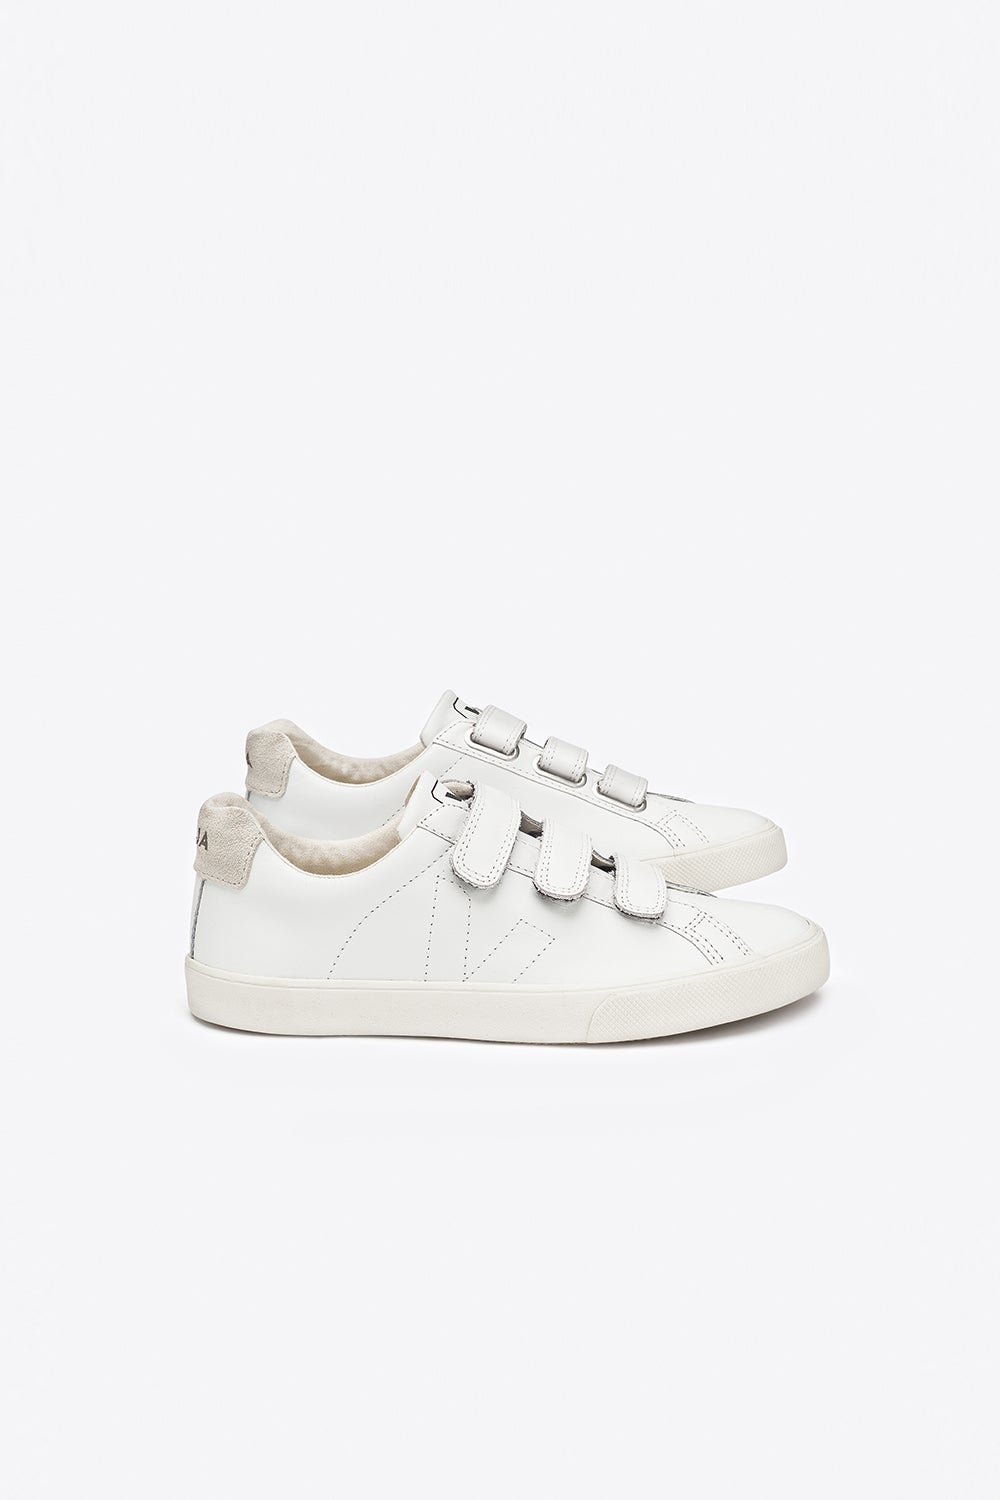 Veja 3 Locks Leather Extra White Pierre